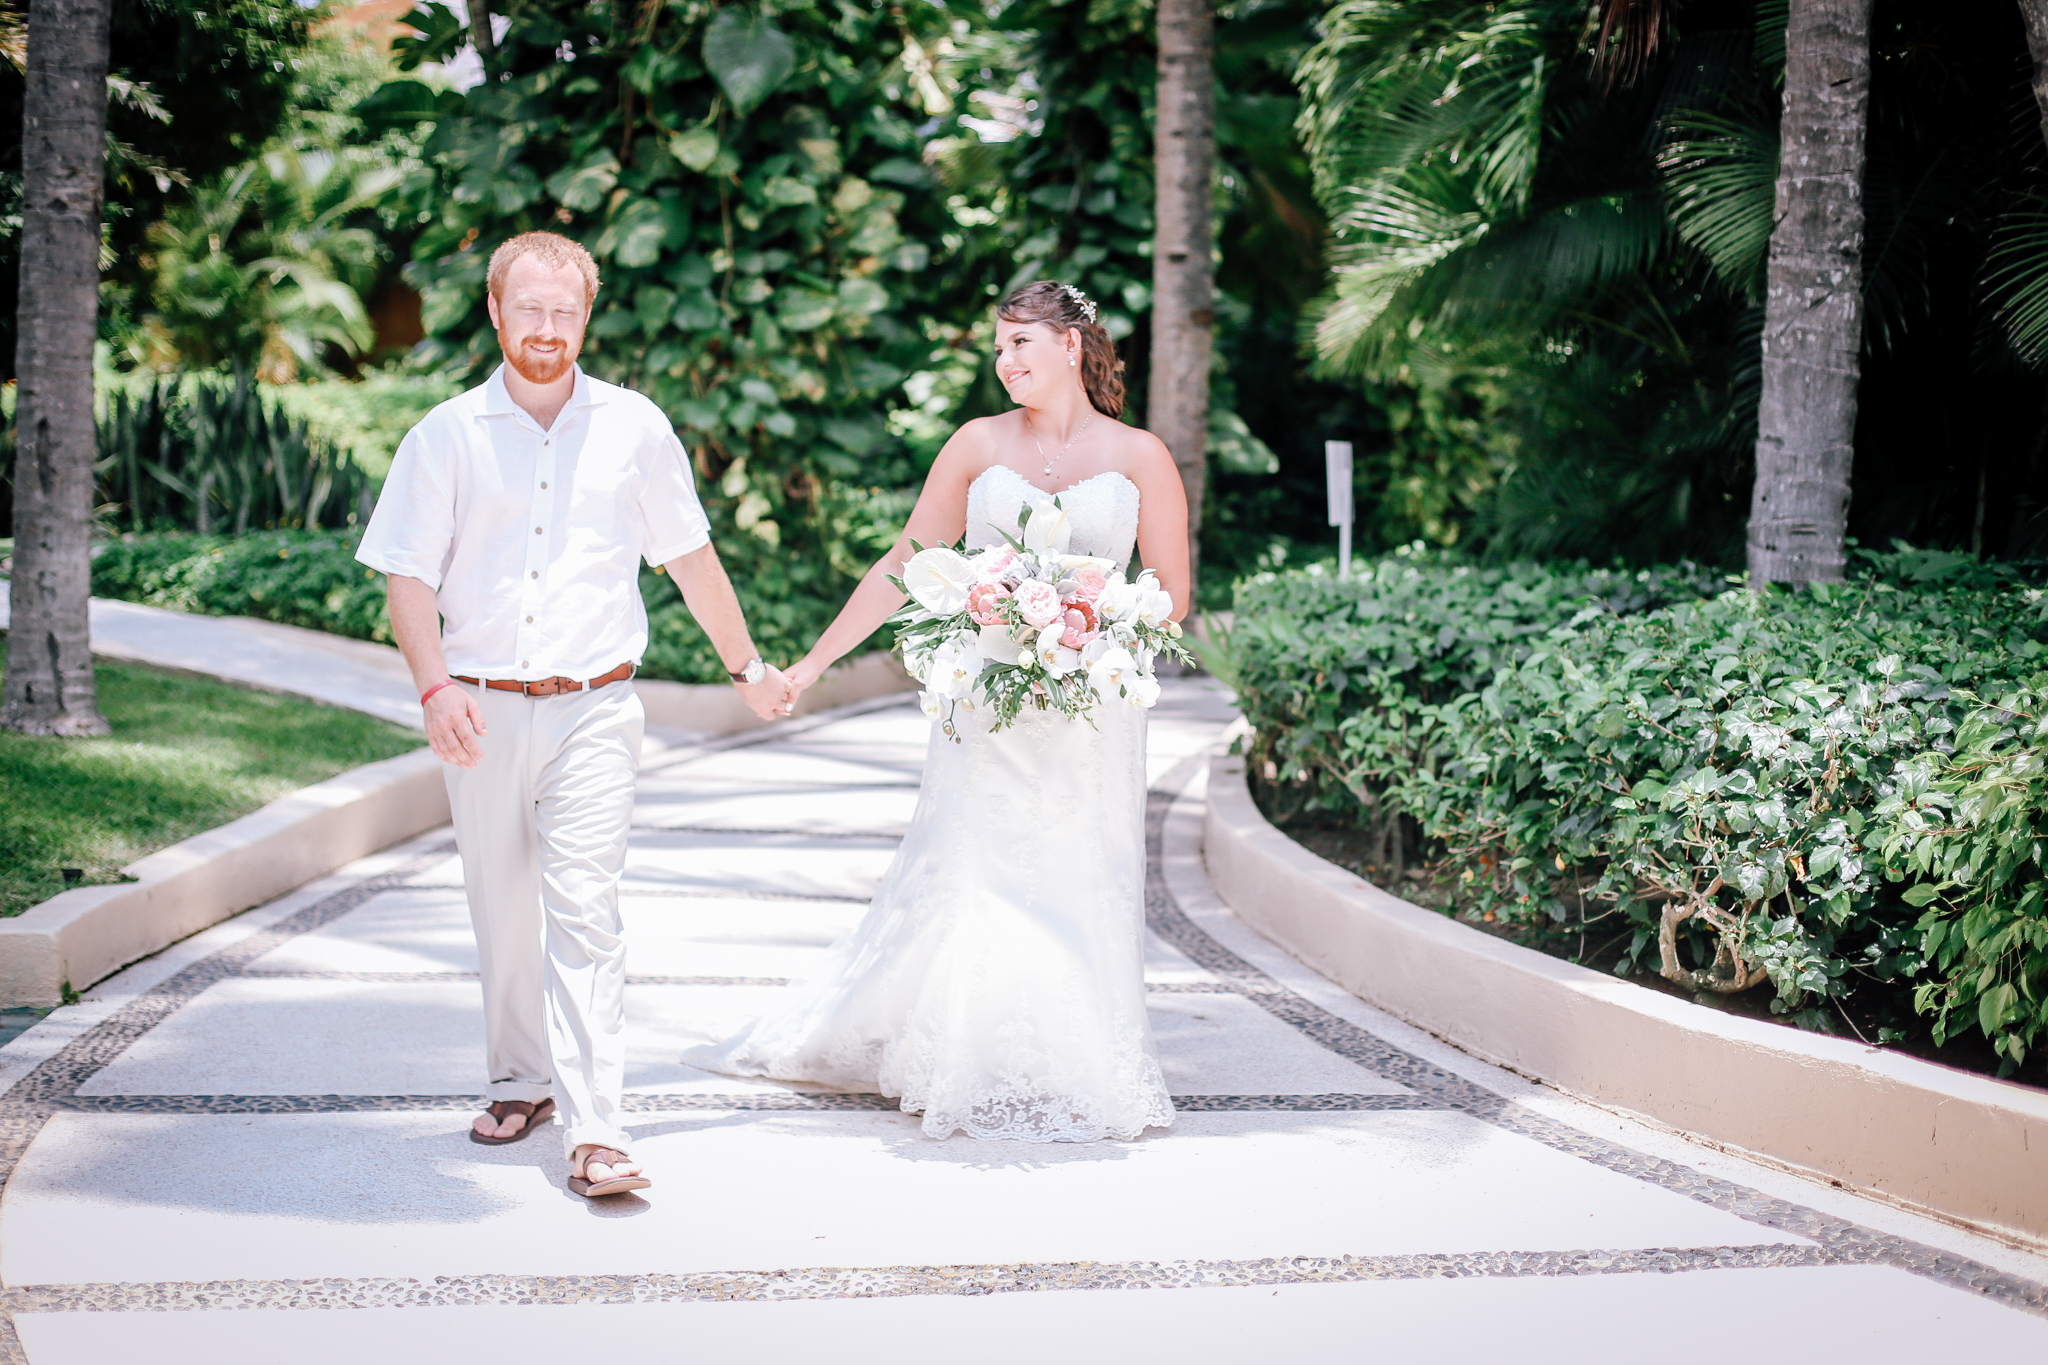 Tiffany and Ryan - Puerto Vallarta Wedding Photographer - 45.jpg